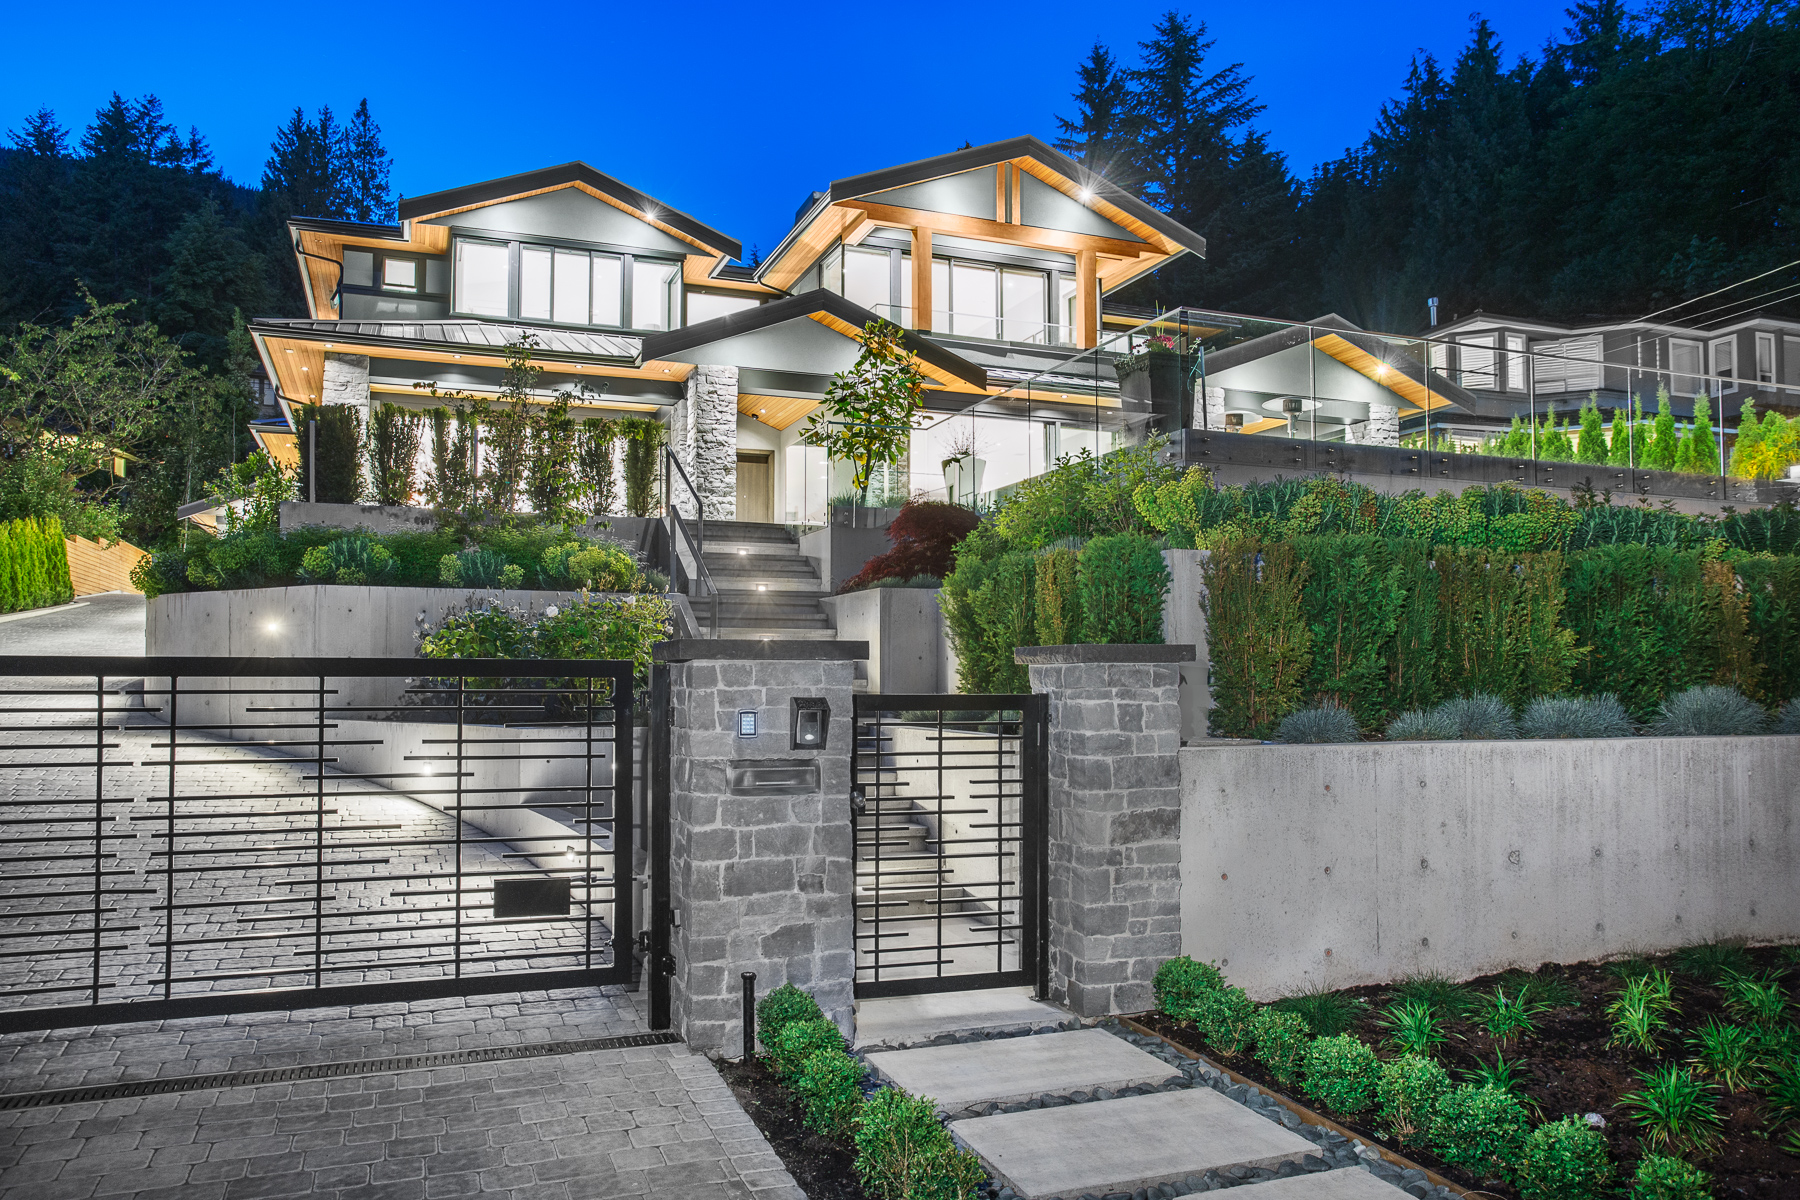 Design Marque Pacific Property Group Takes To Market Design Marque House Design Marque